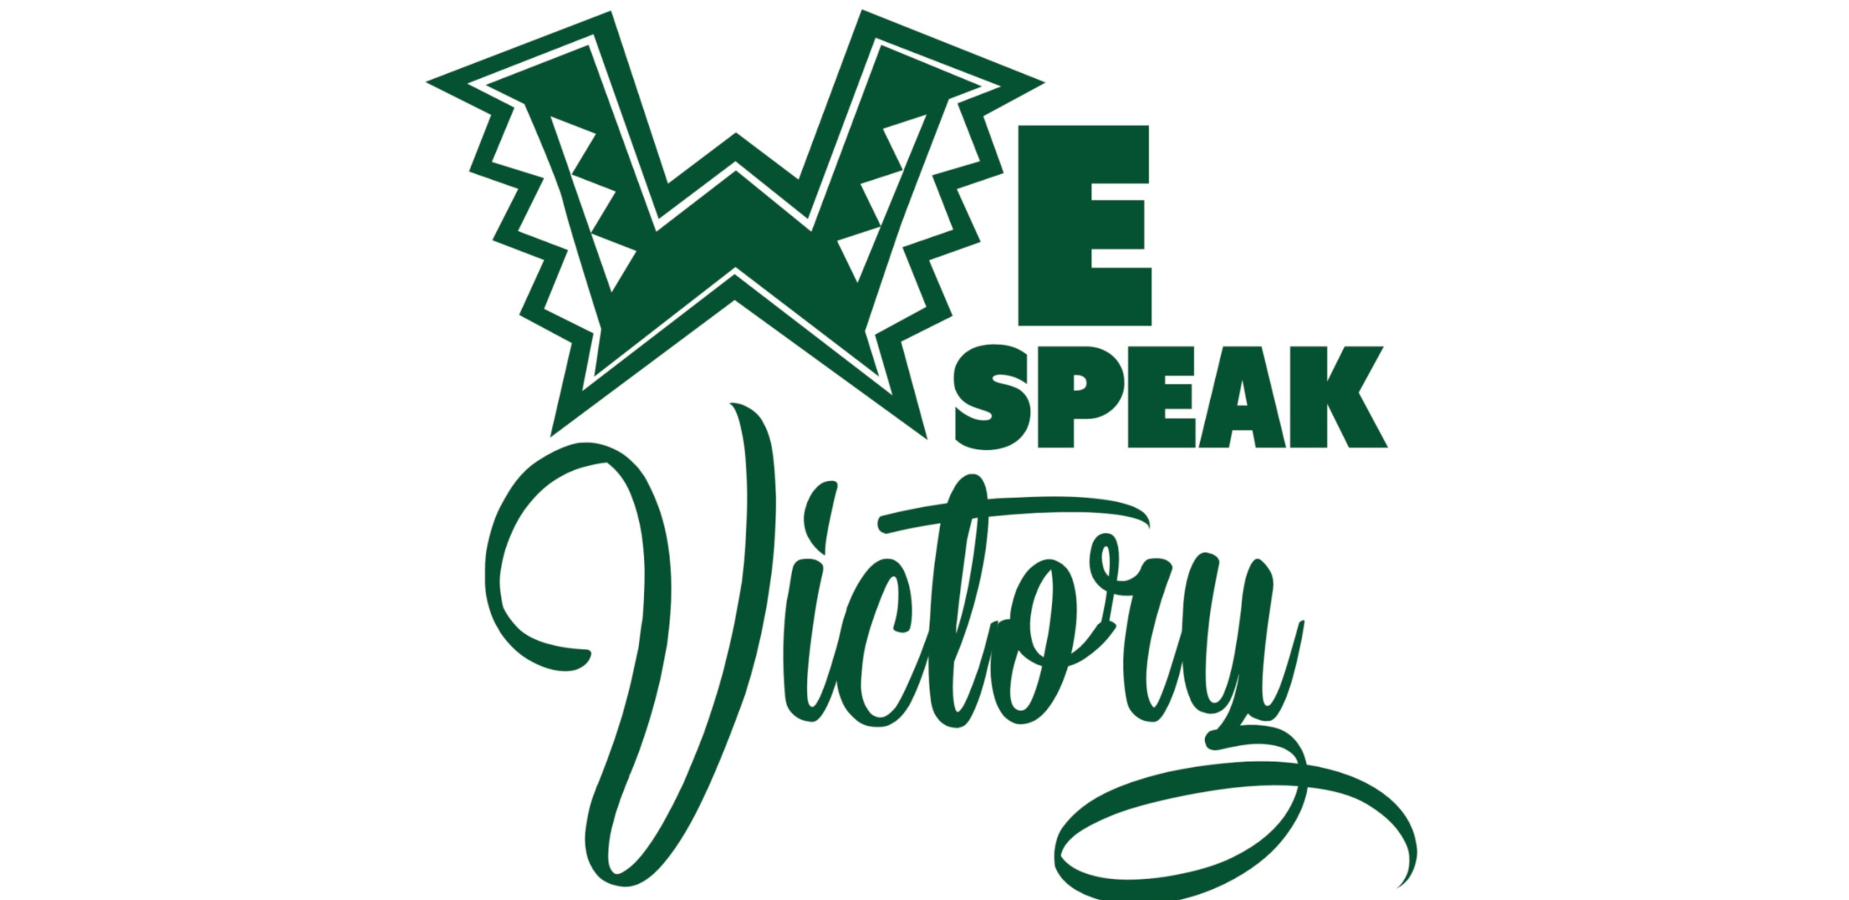 WE Speak Victory!